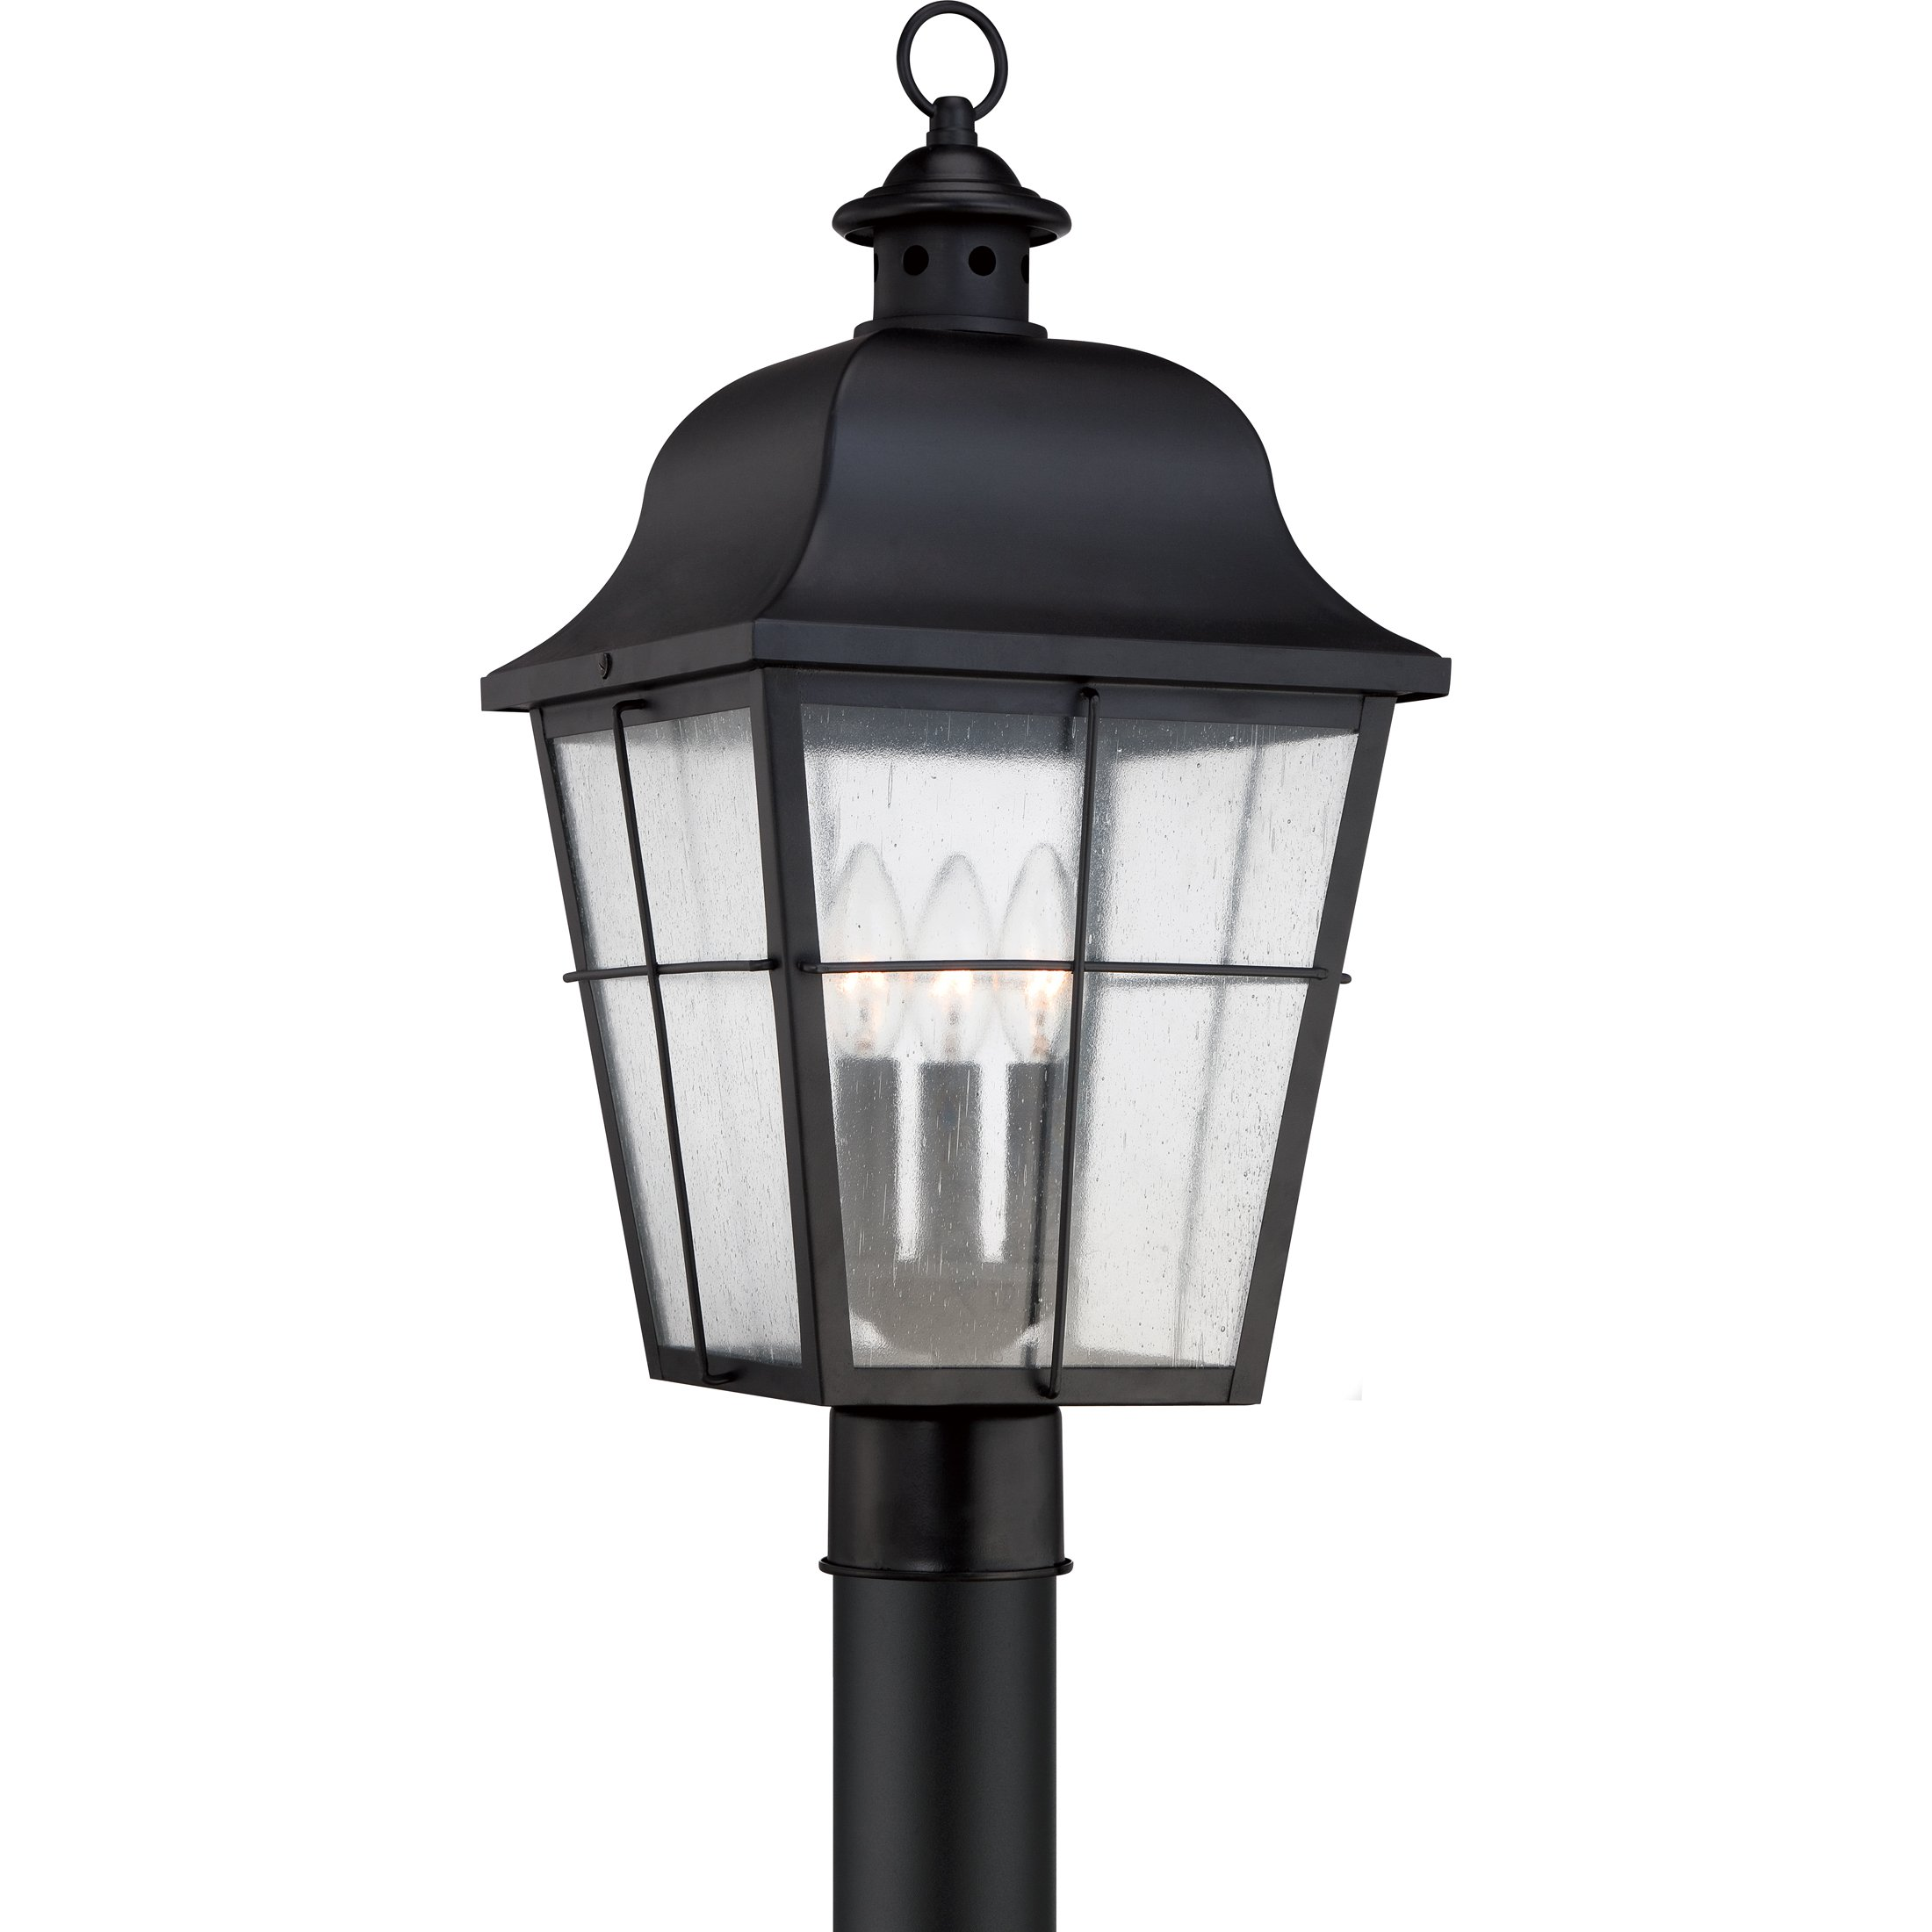 Quoizel MHE9010K 3-Light Millhouse Outdoor Lantern in Mystic Black by Quoizel